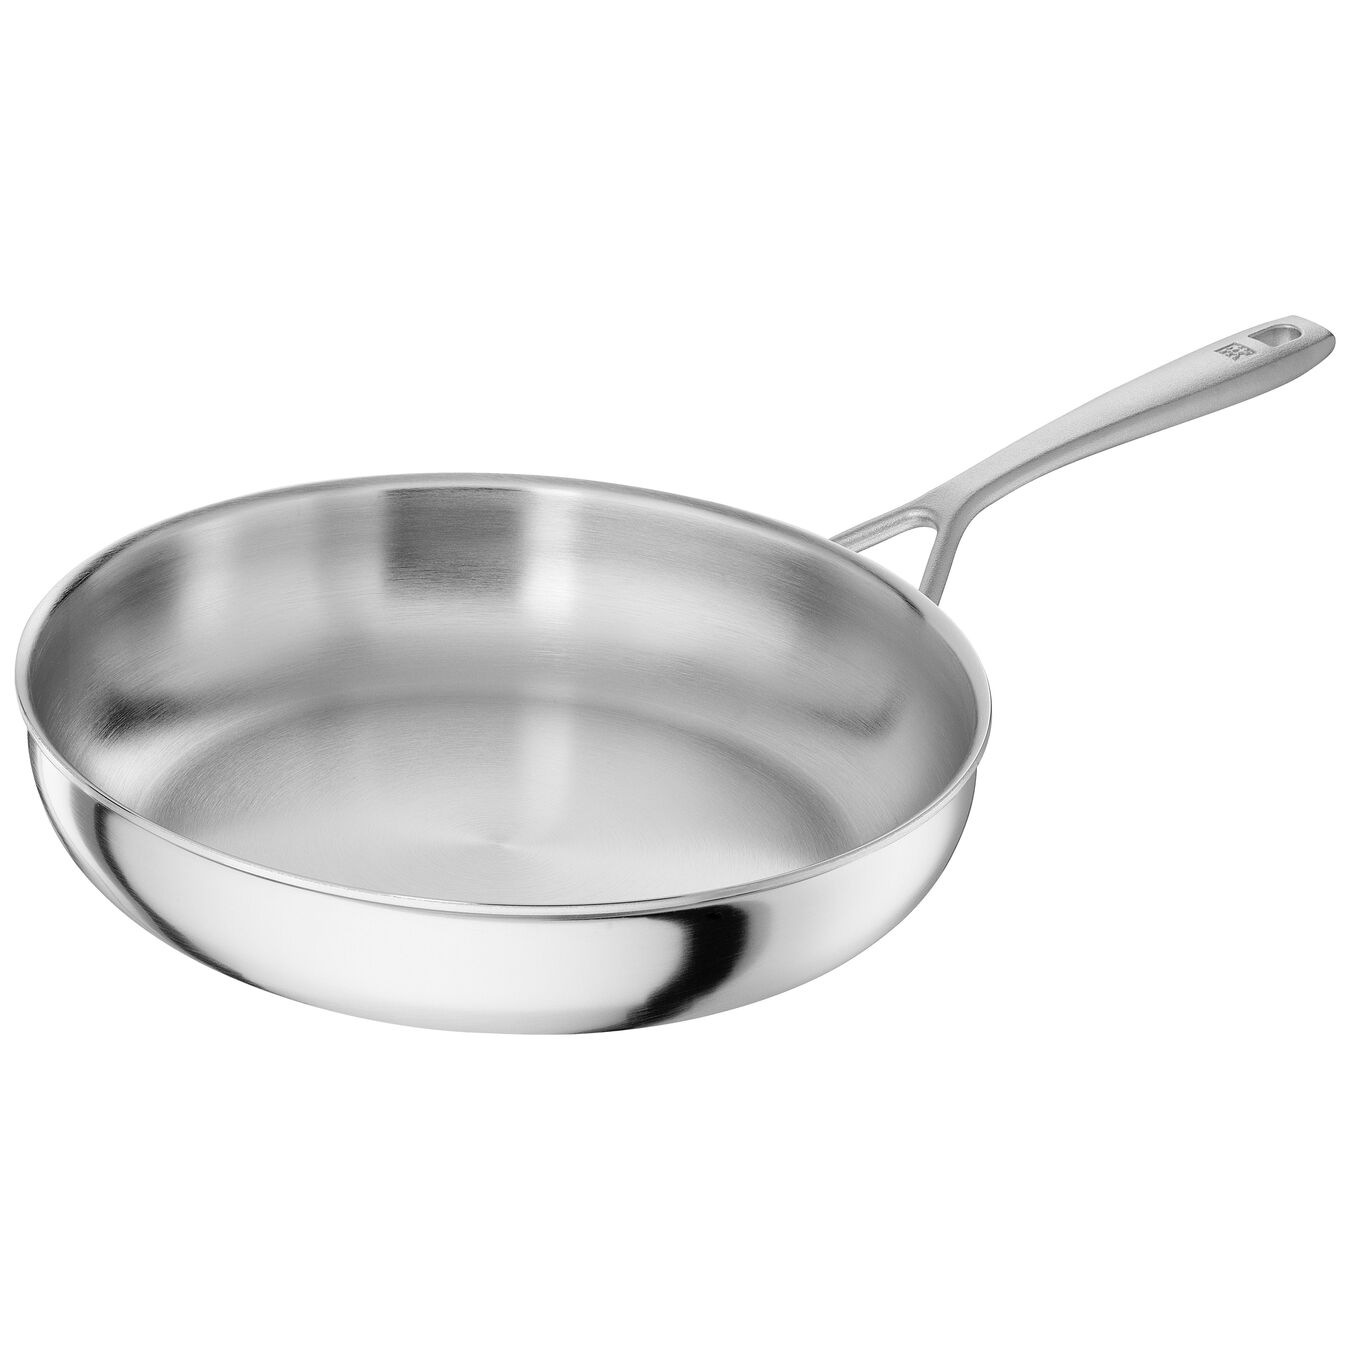 28 cm / 11 inch 18/10 Stainless Steel Frying pan,,large 3